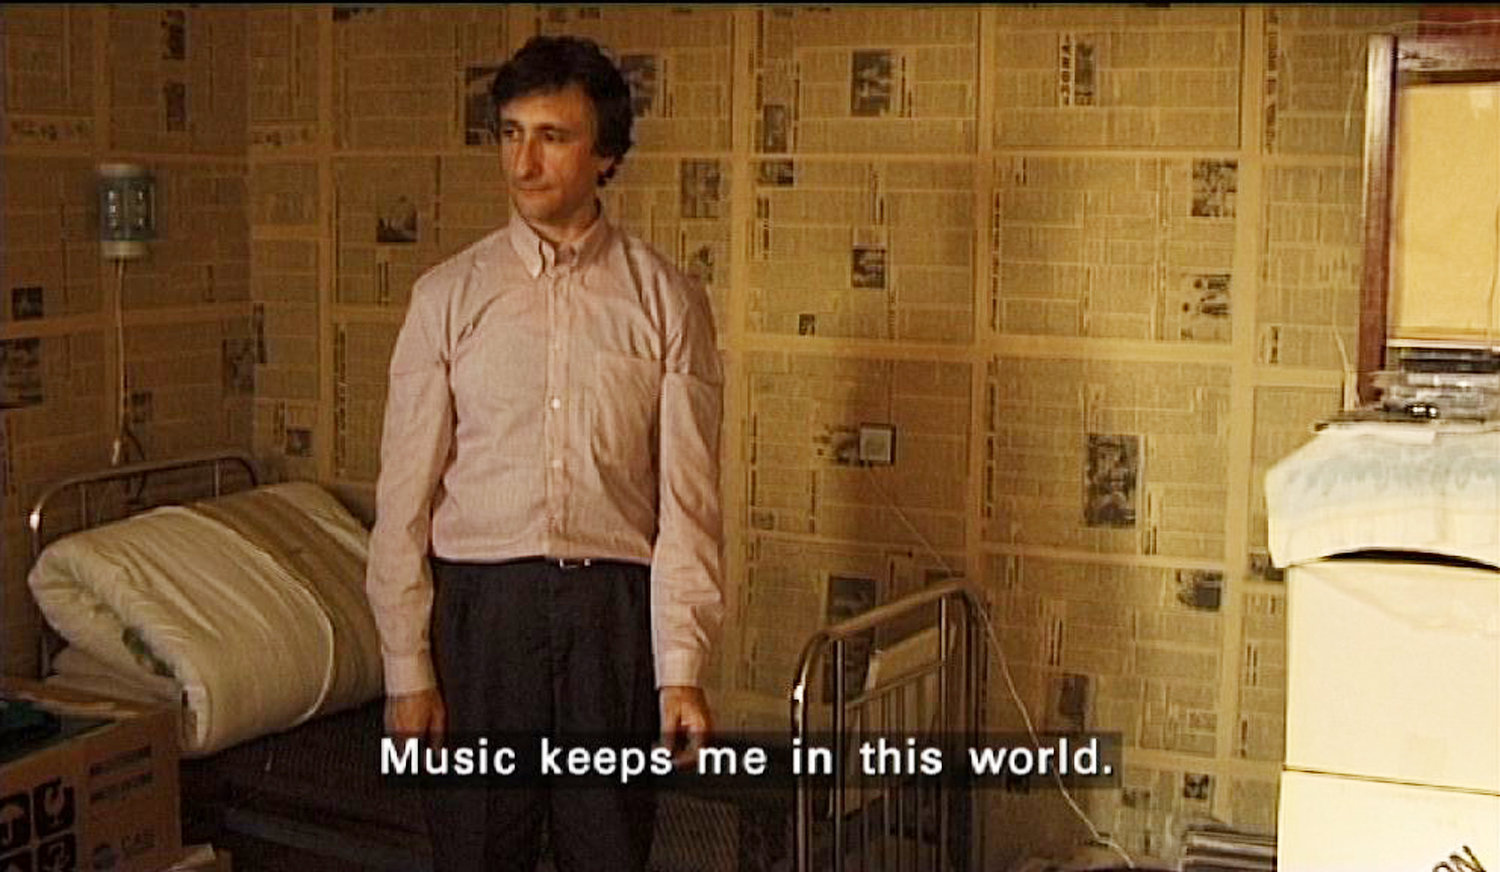 Vasily Zvarychuk at home with sub-title 'Music keeps me in this world'.